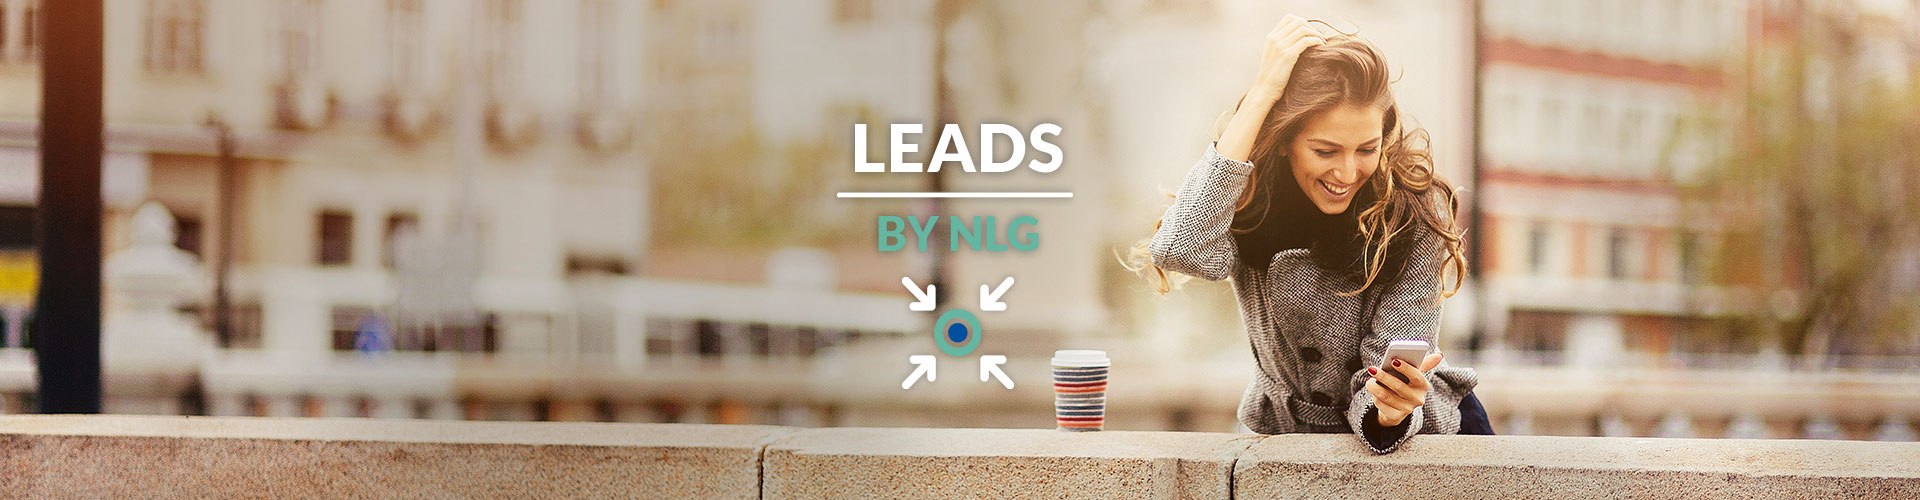 header_leads